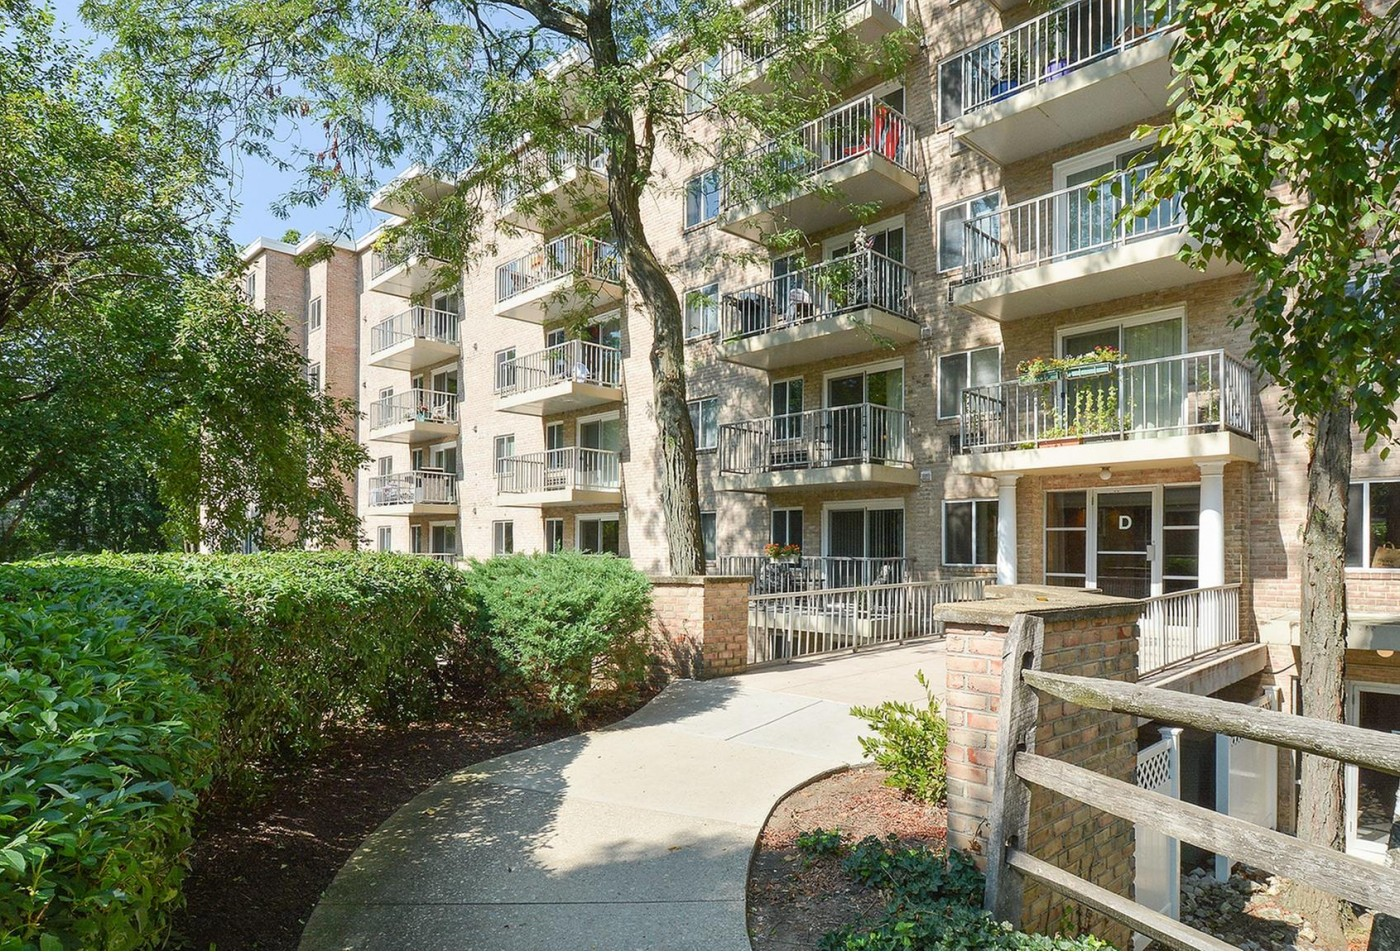 Swimming Pool | Apartment Homes in King of Prussia, PA | Gulph Mills Village Apartments